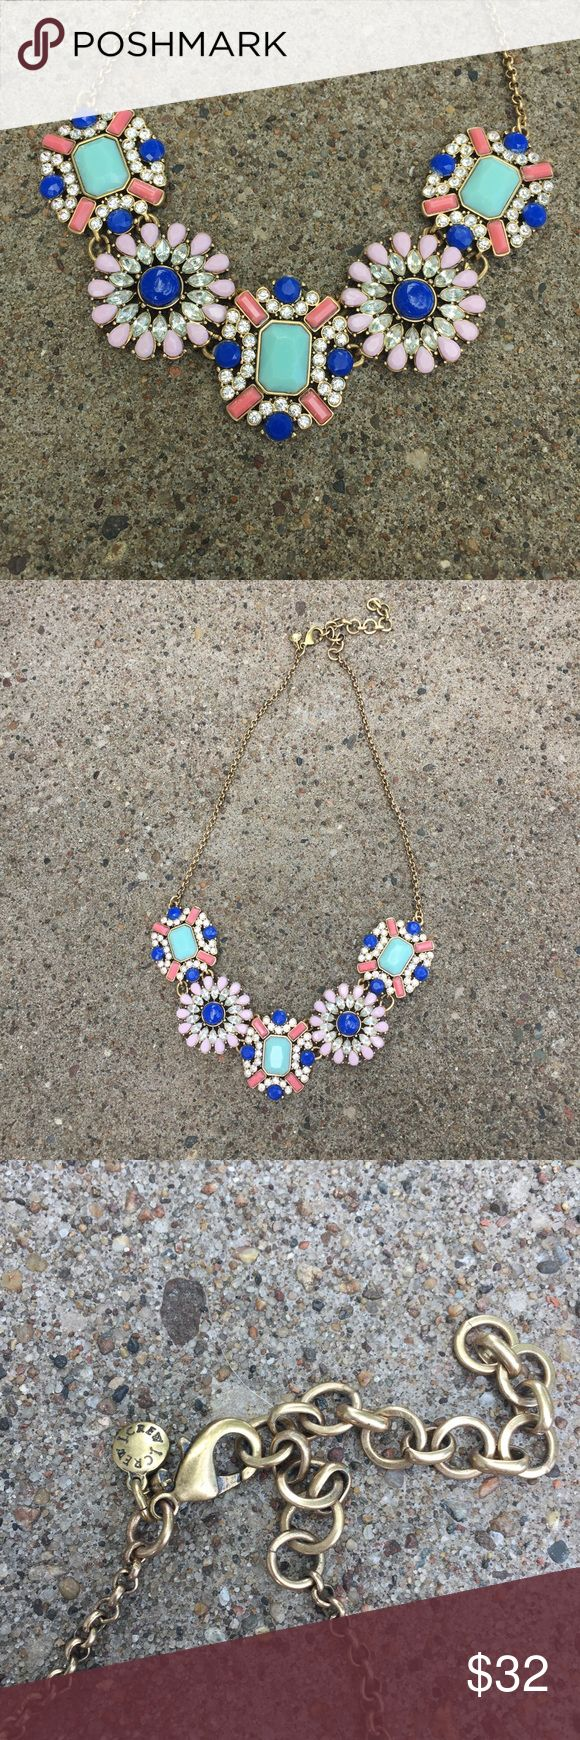 J Crew Pastel Statement Necklace Gorgeous, colorful, and in perfect condition. Authentic J Crew. J. Crew Jewelry Necklaces